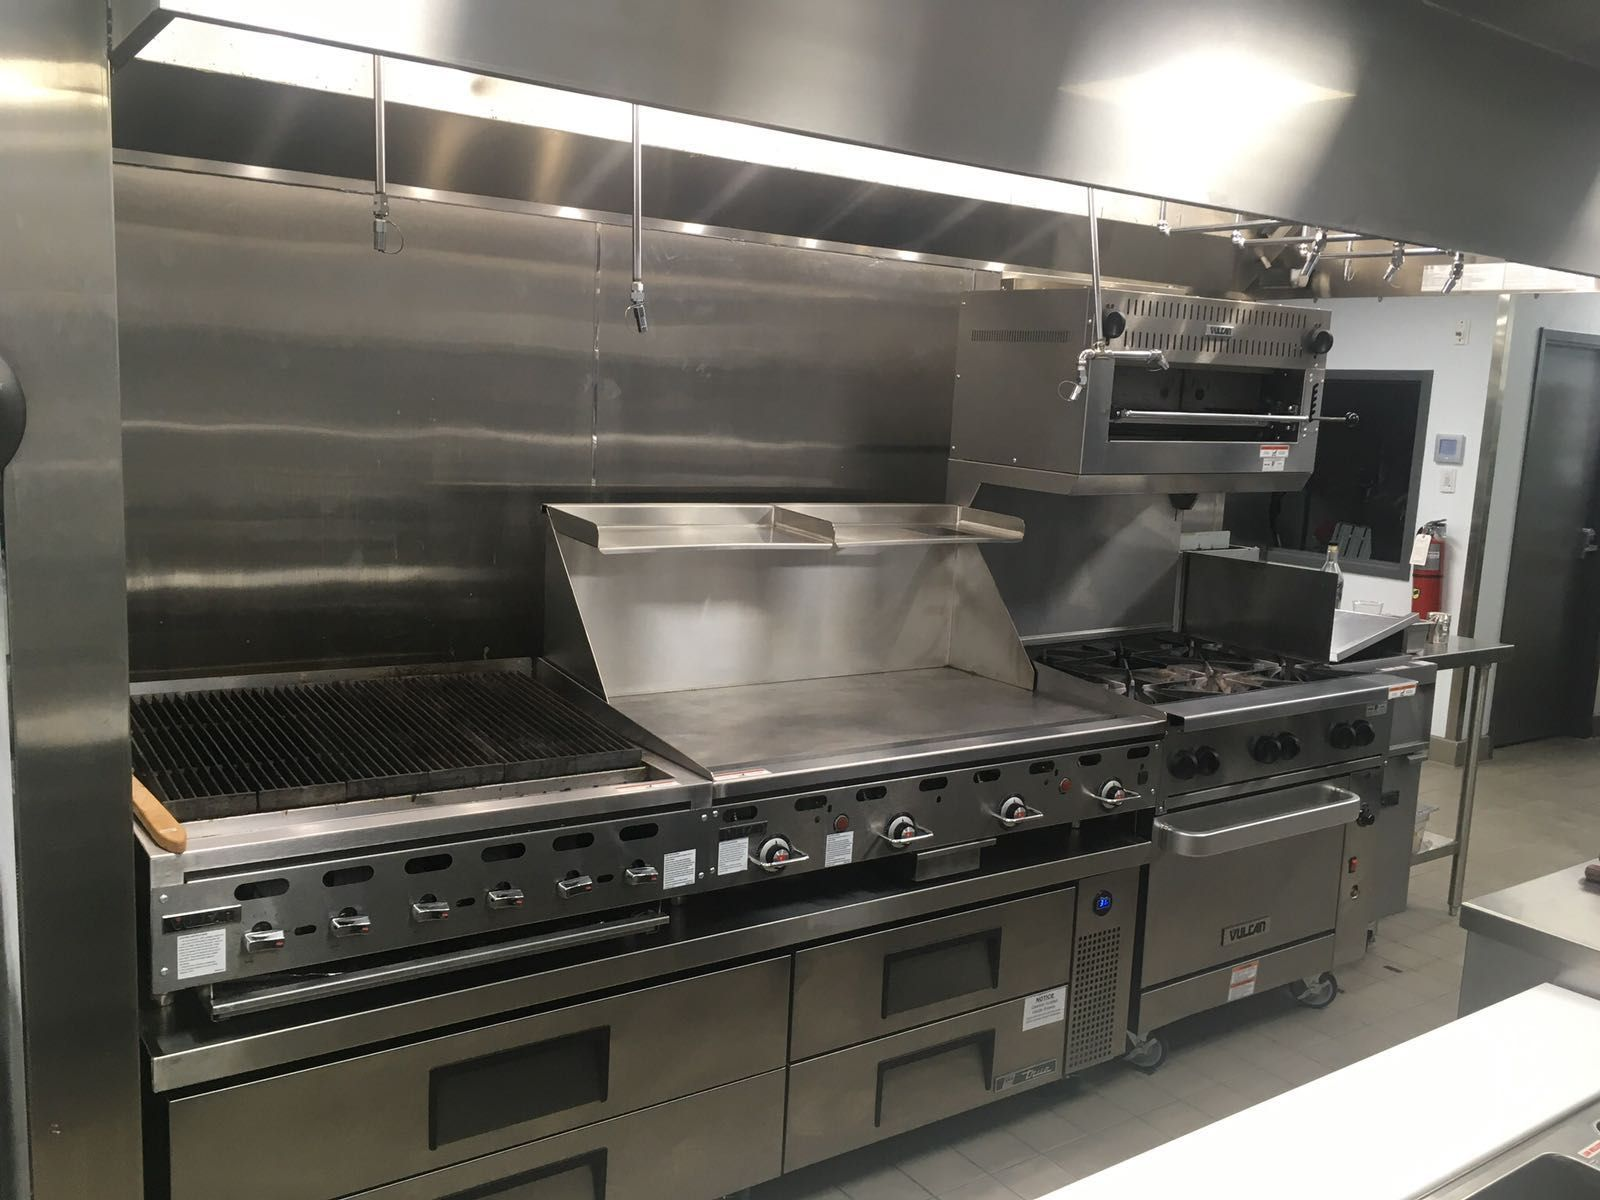 Offering Refrigerated Chef Bases Countertop Charbroilers